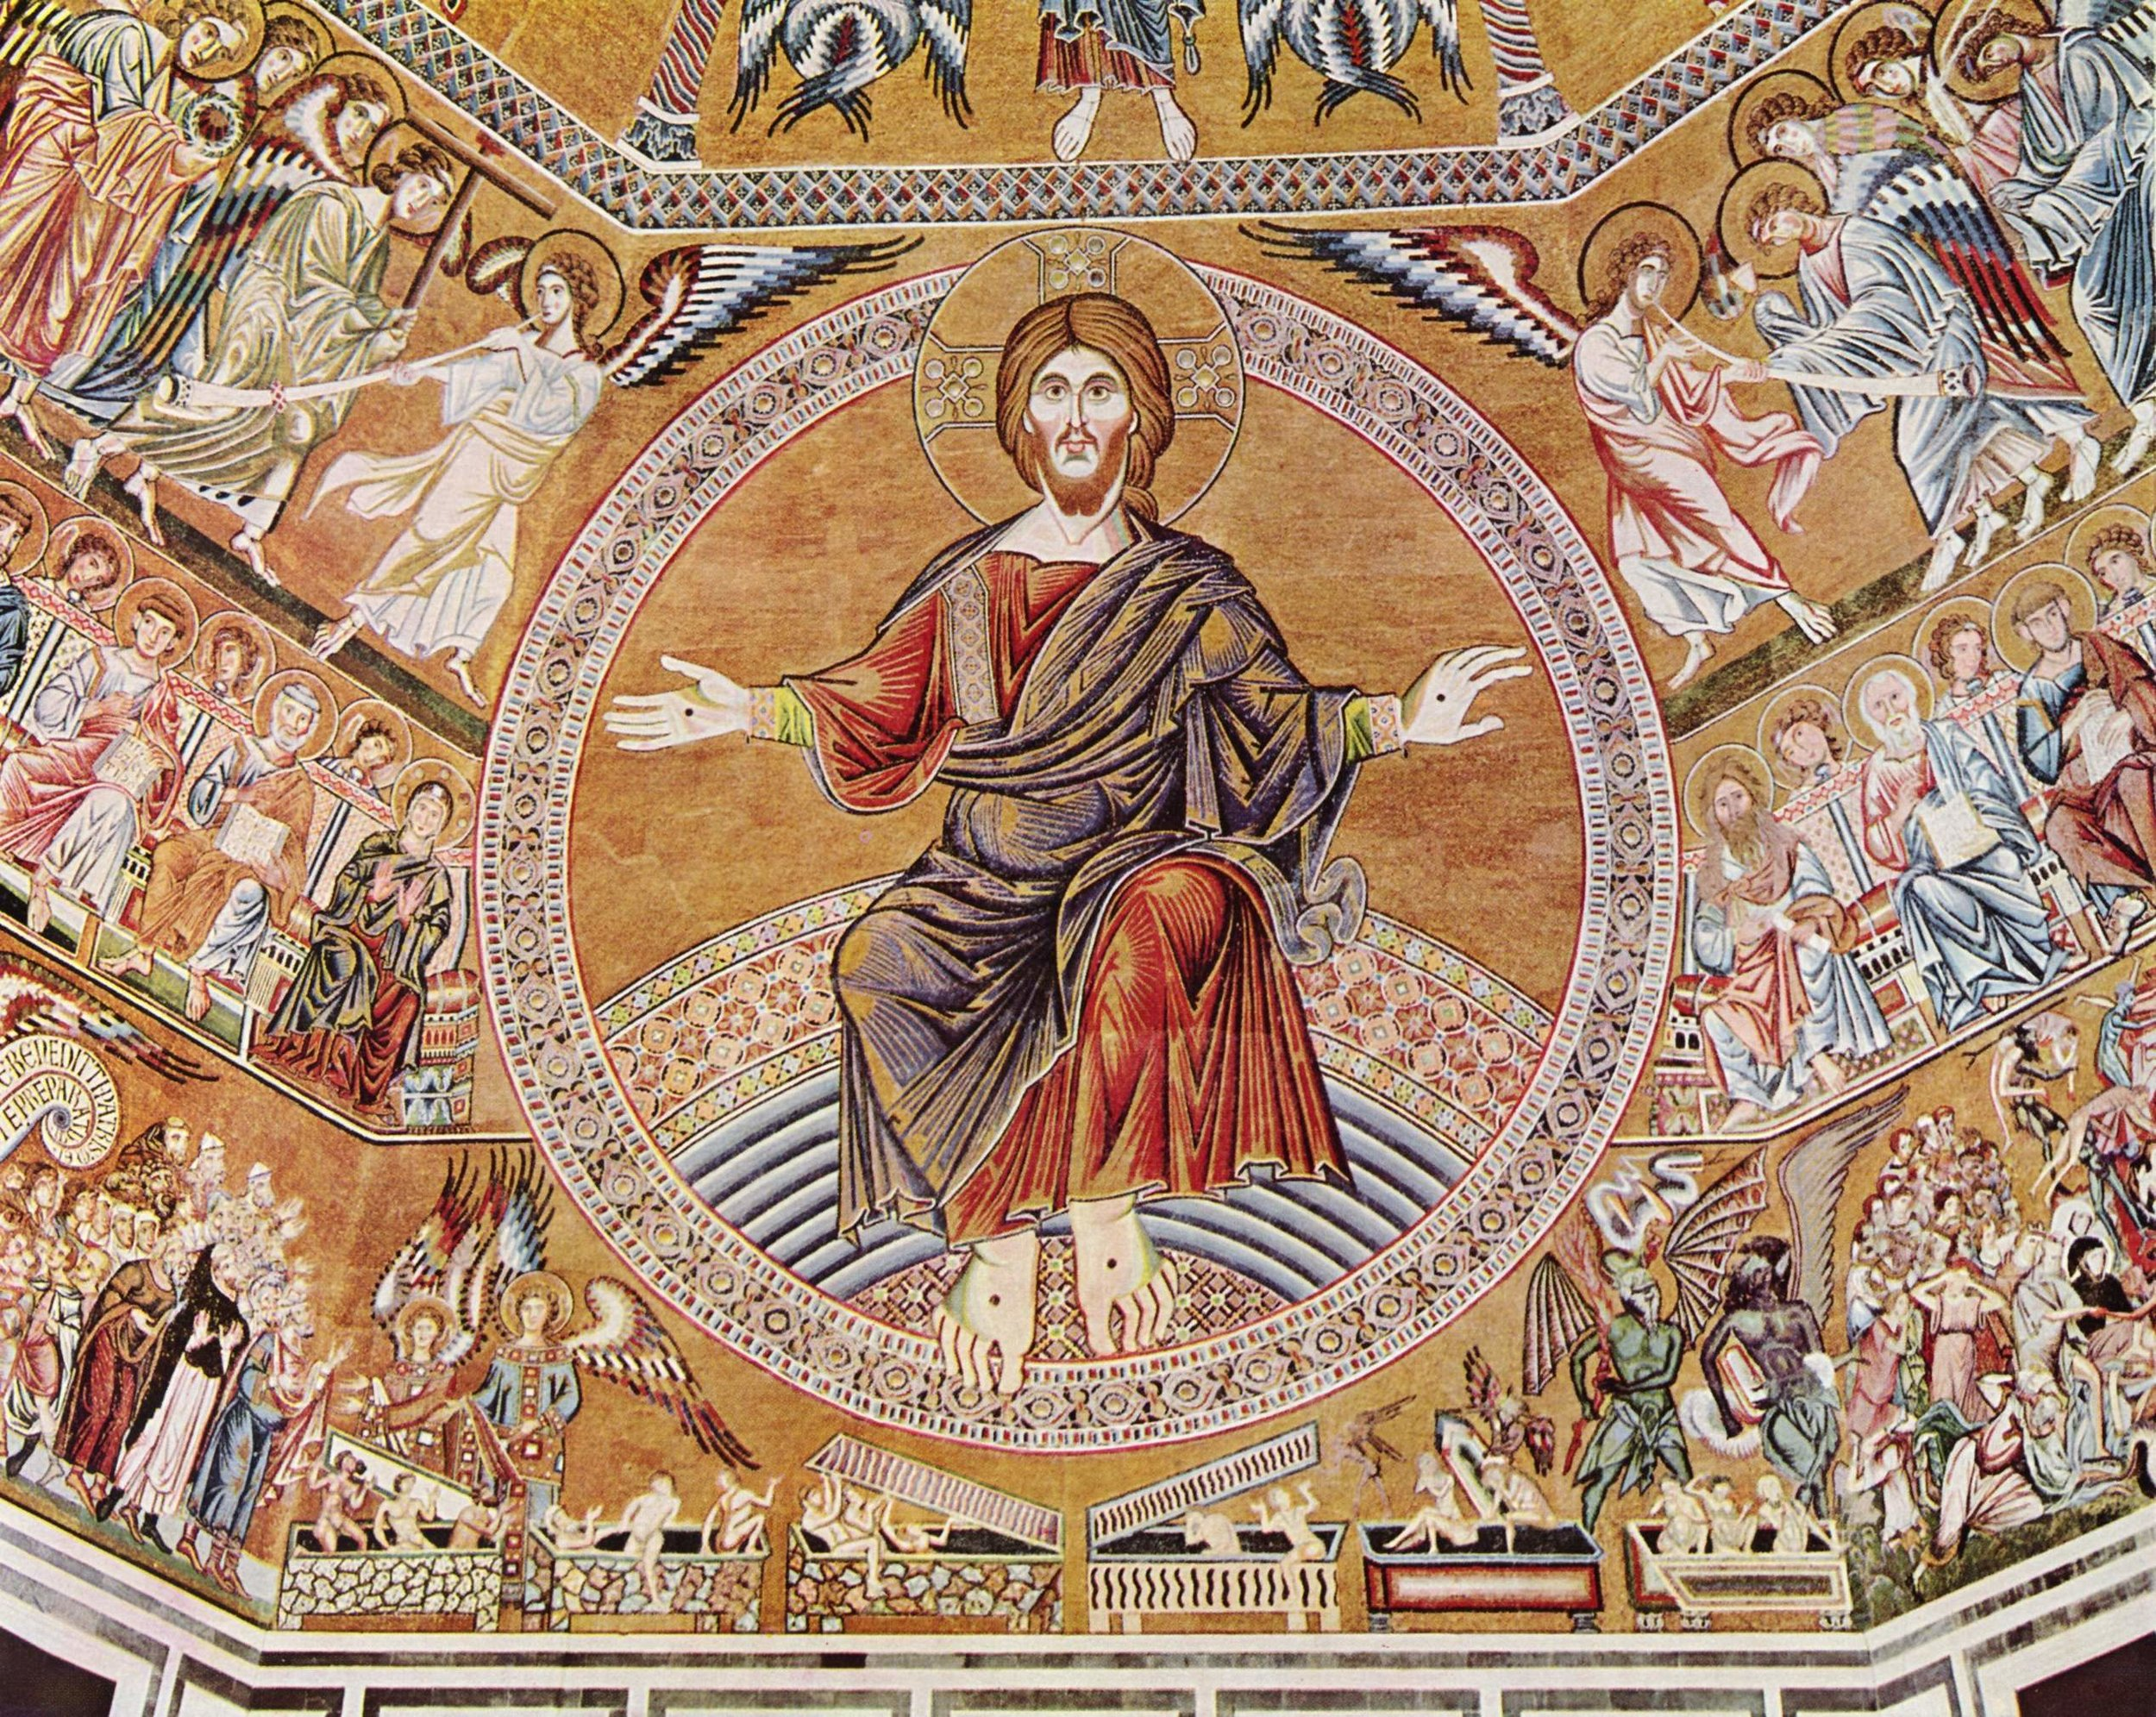 Christ in Majesty, Florentine mosaic, 1300